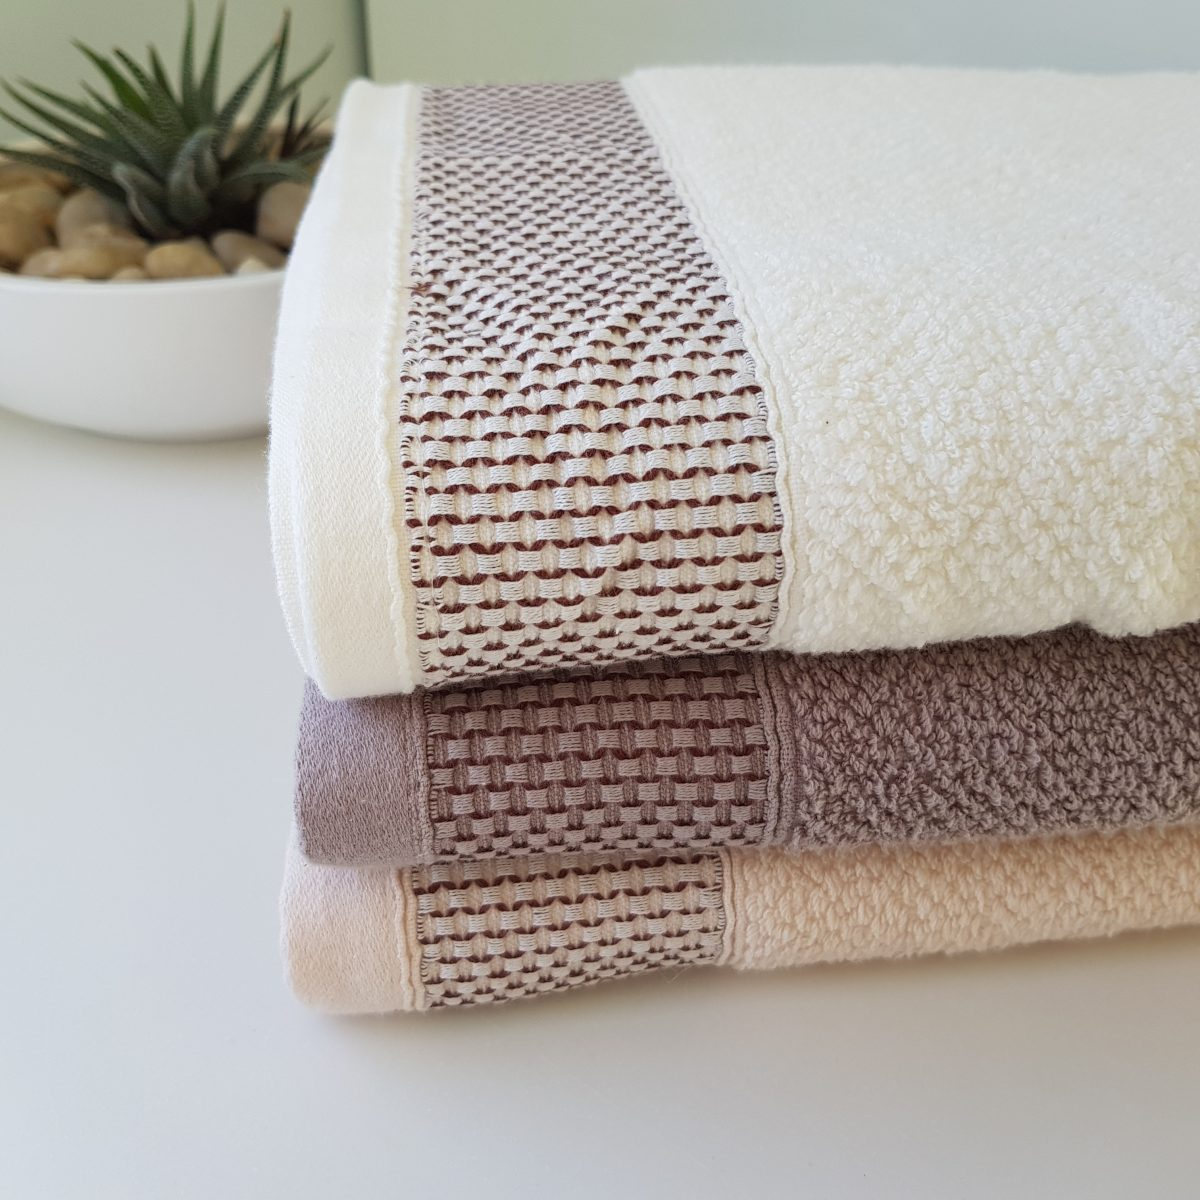 Bath Creations: Absorbent Bath Towels